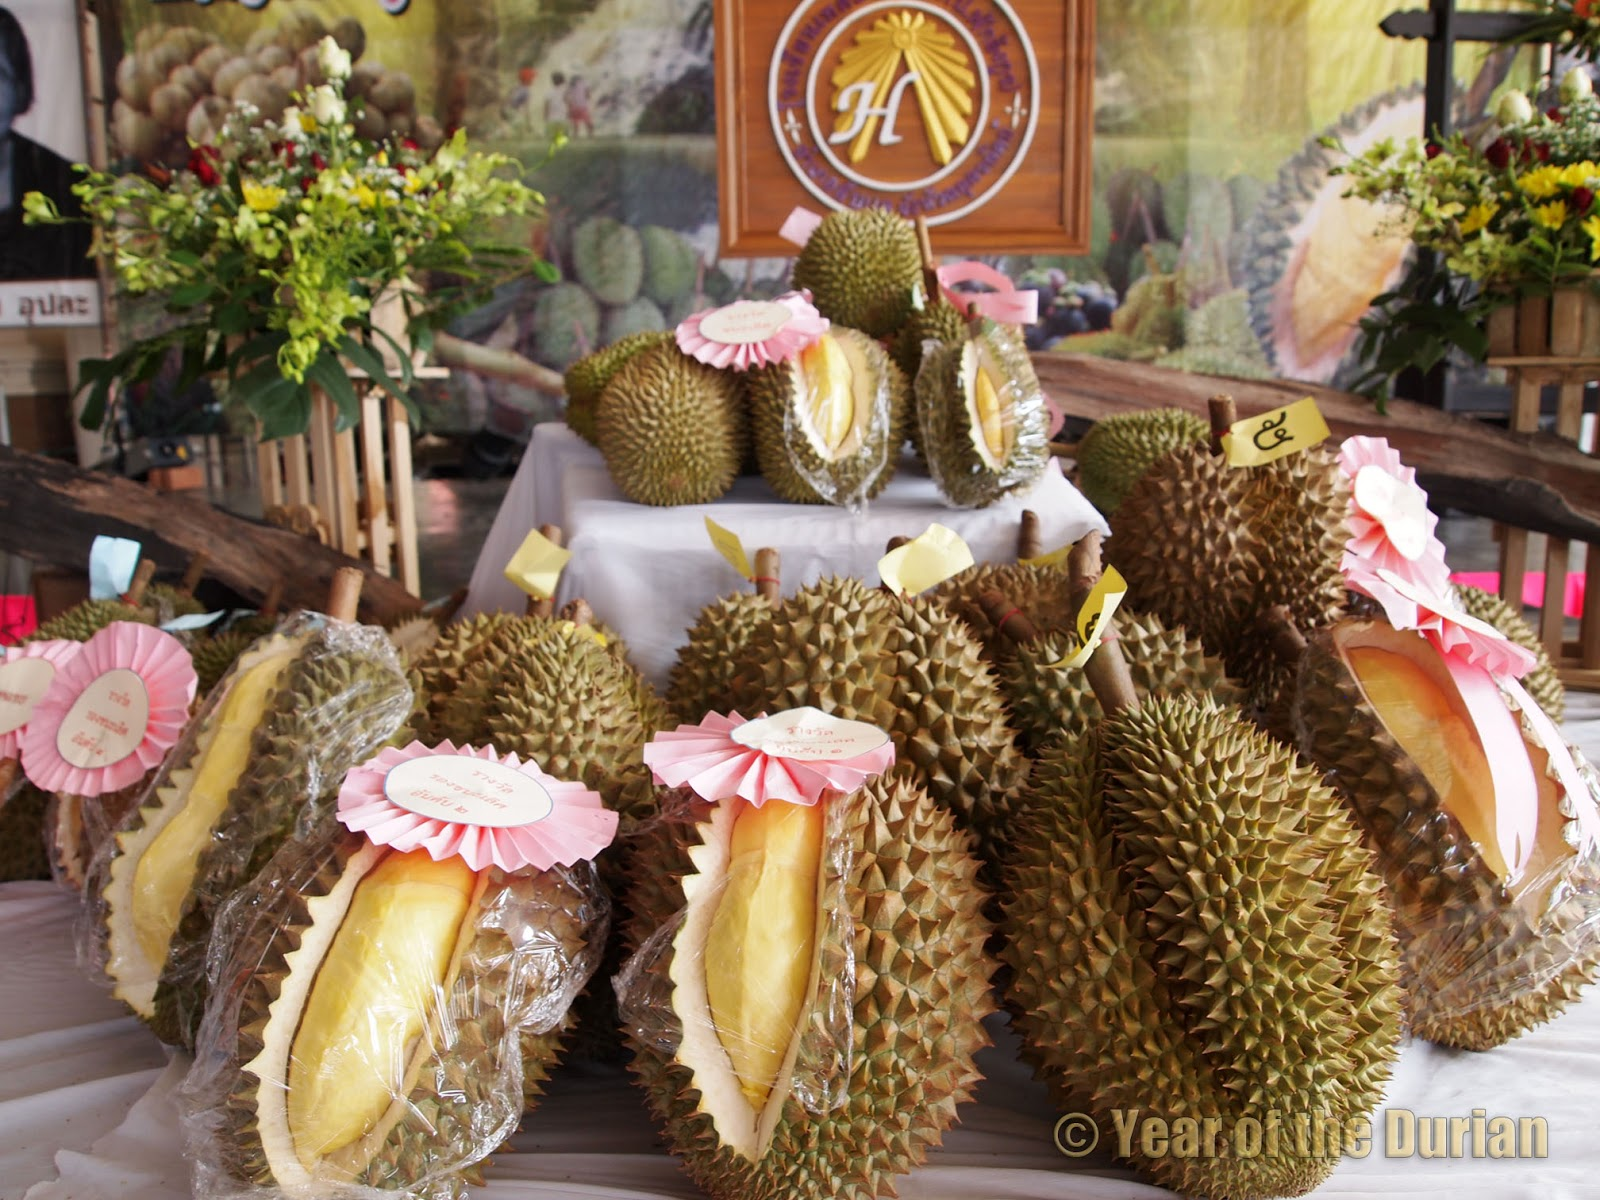 Uttaradit Thailand  city pictures gallery : Laplae Durian Festival, Uttaradit Thailand | Photo Essay